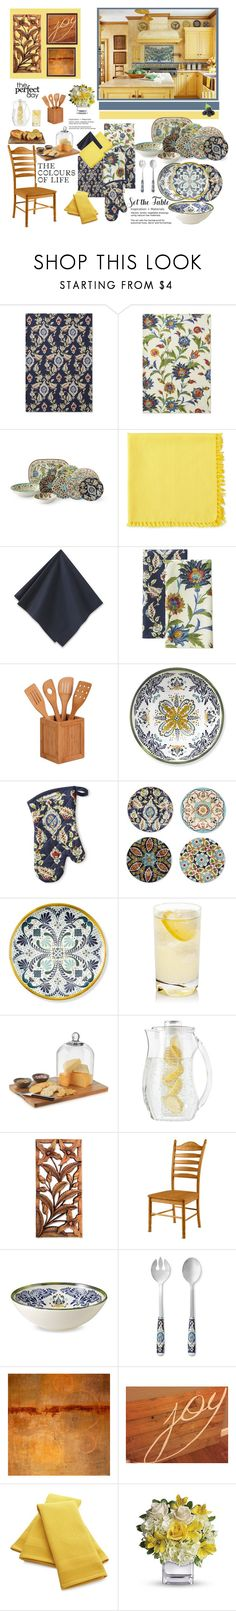 """""""The Perfect Day"""" by wendyfer ❤ liked on Polyvore featuring interior, interiors, interior design, home, home decor, interior decorating, Williams-Sonoma, Fiesta, Honey-Can-Do and Libbey"""